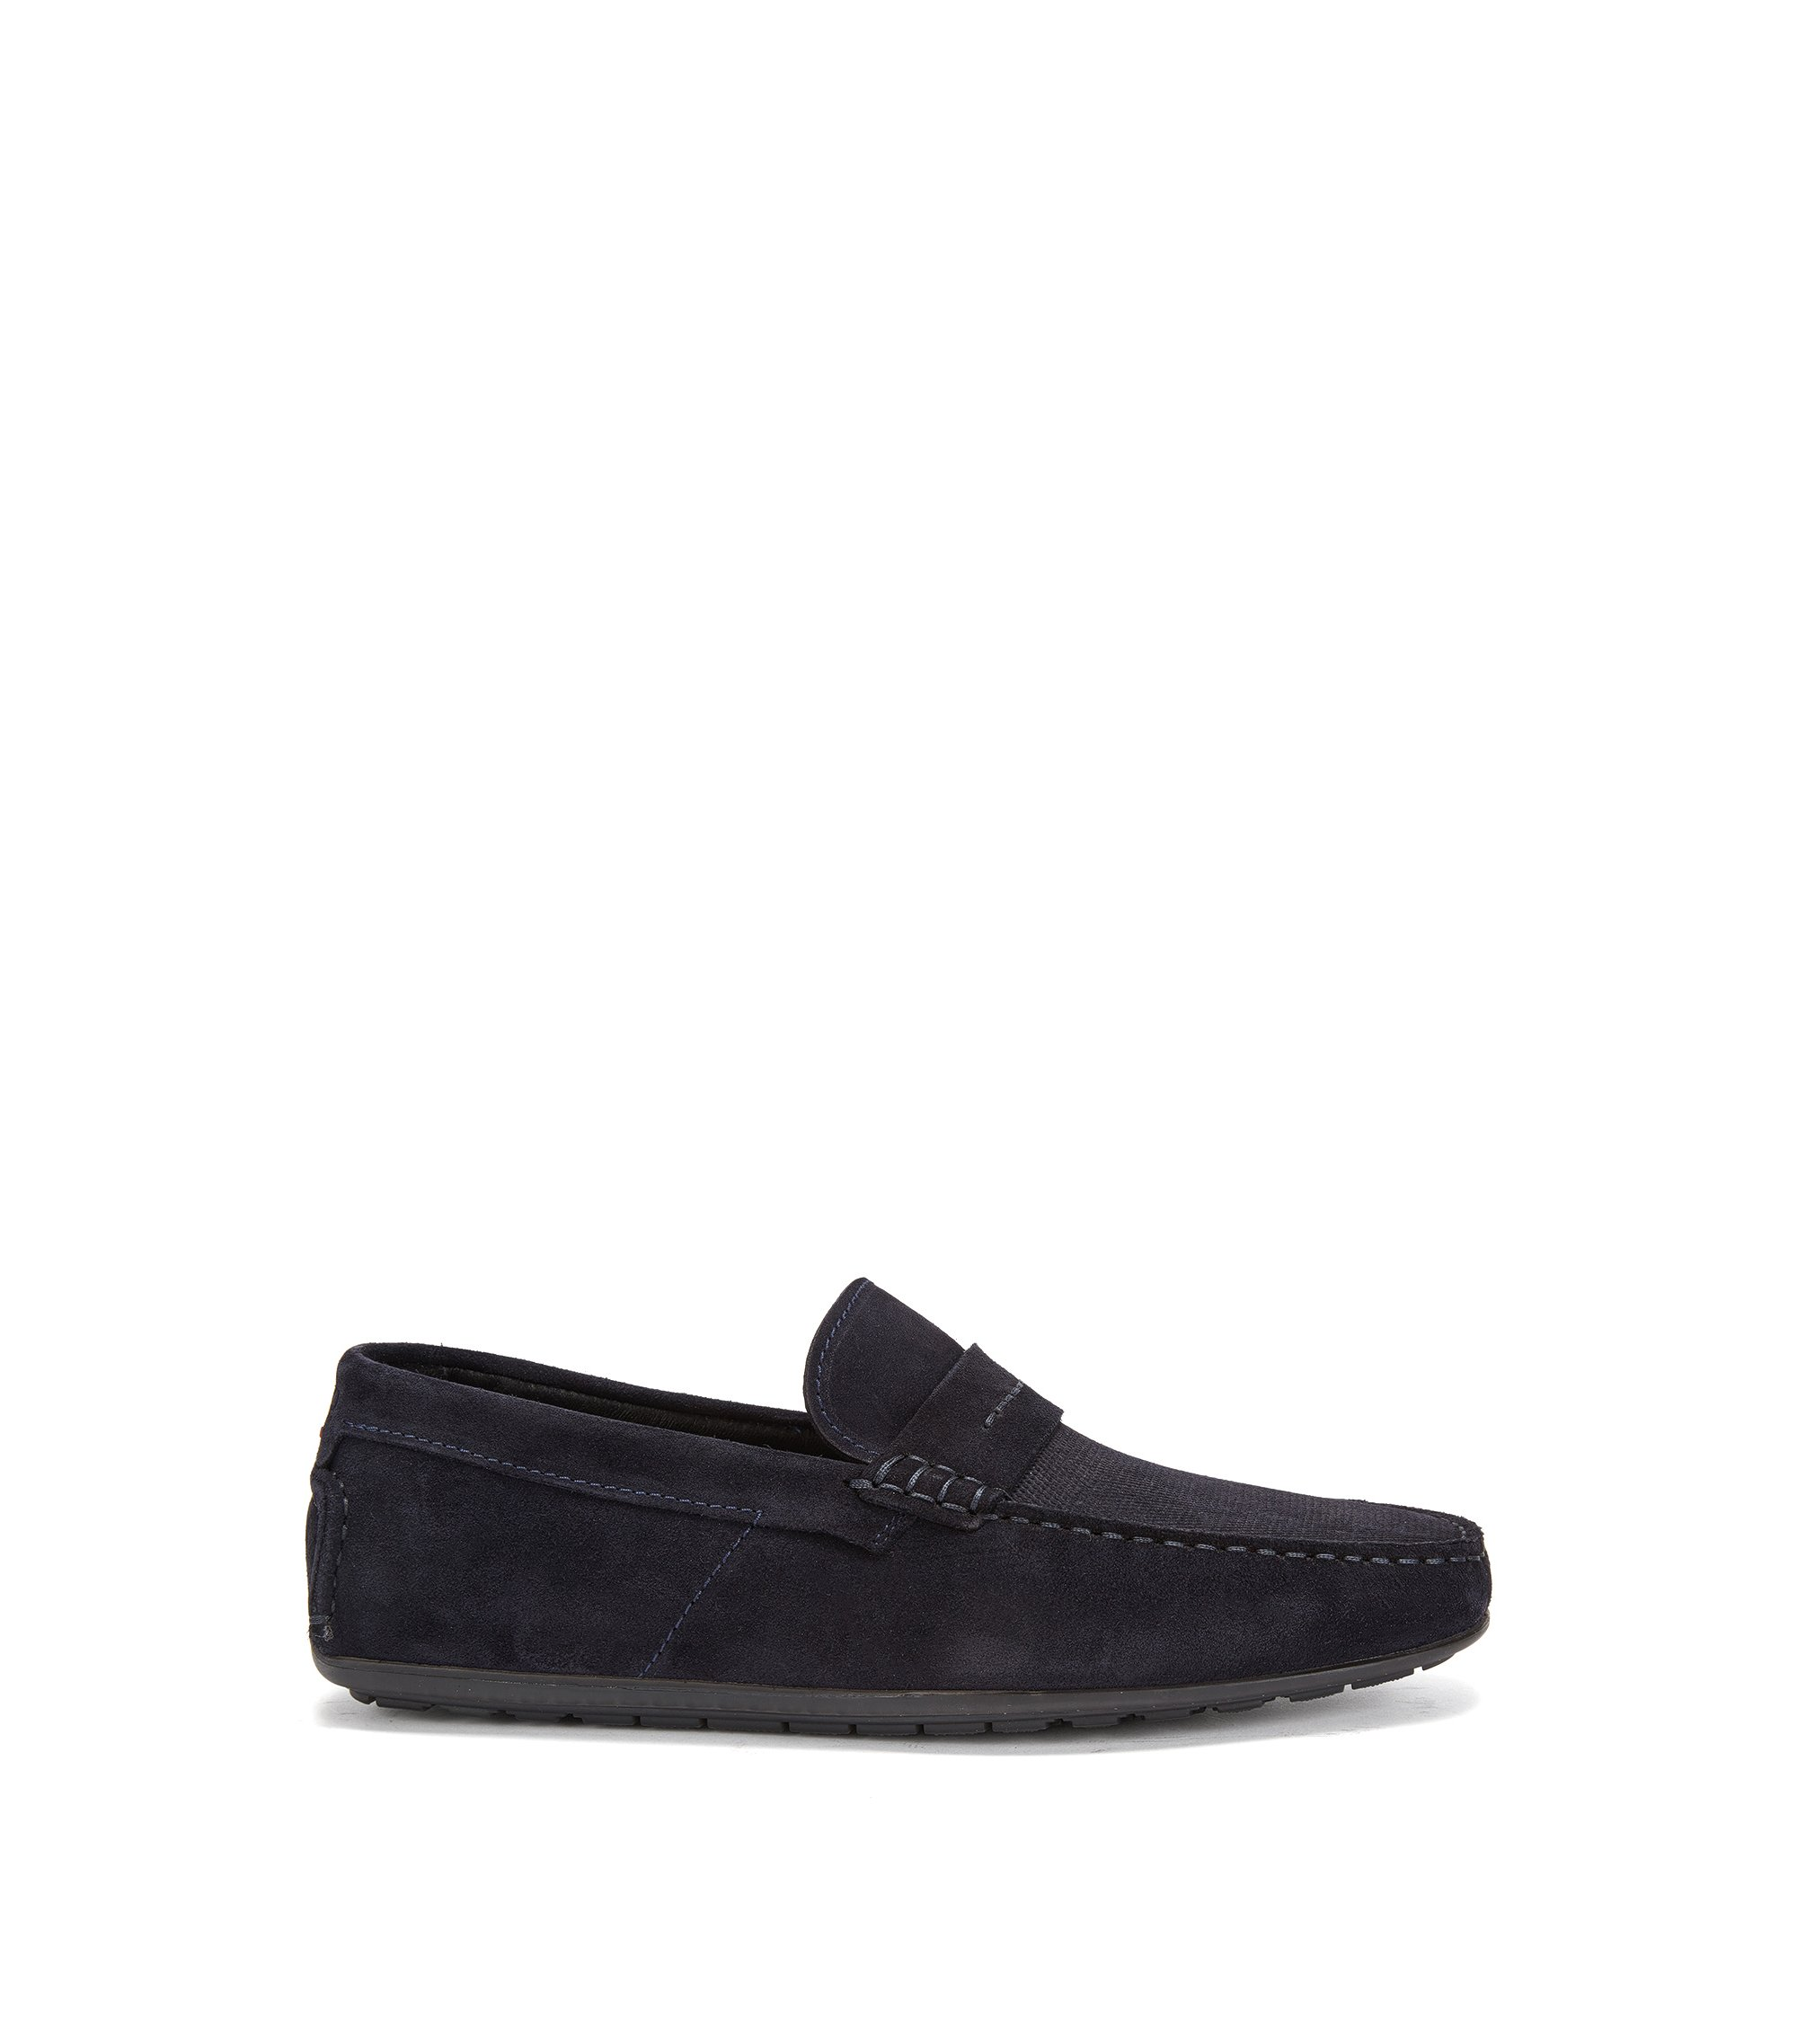 Mocassini slip-on in pelle scamosciata italiana, Blu scuro